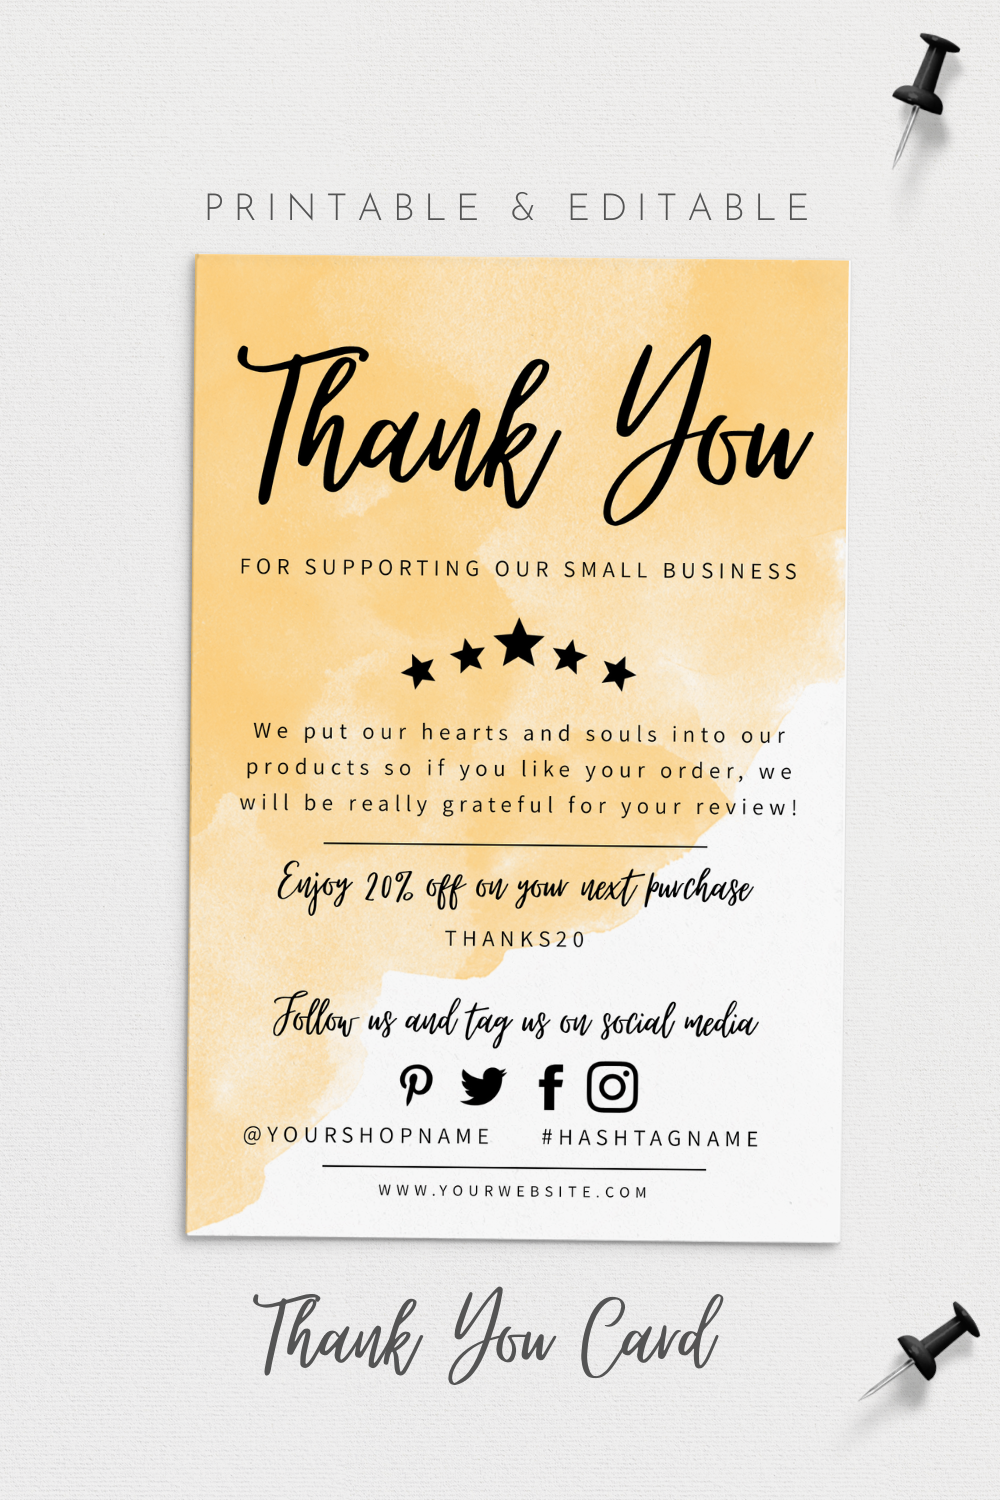 Thank You For Your Order Card Modern Business Insert Card Template Printable Thank Yo Thank You Card Design Business Thank You Cards Business Thank You Notes